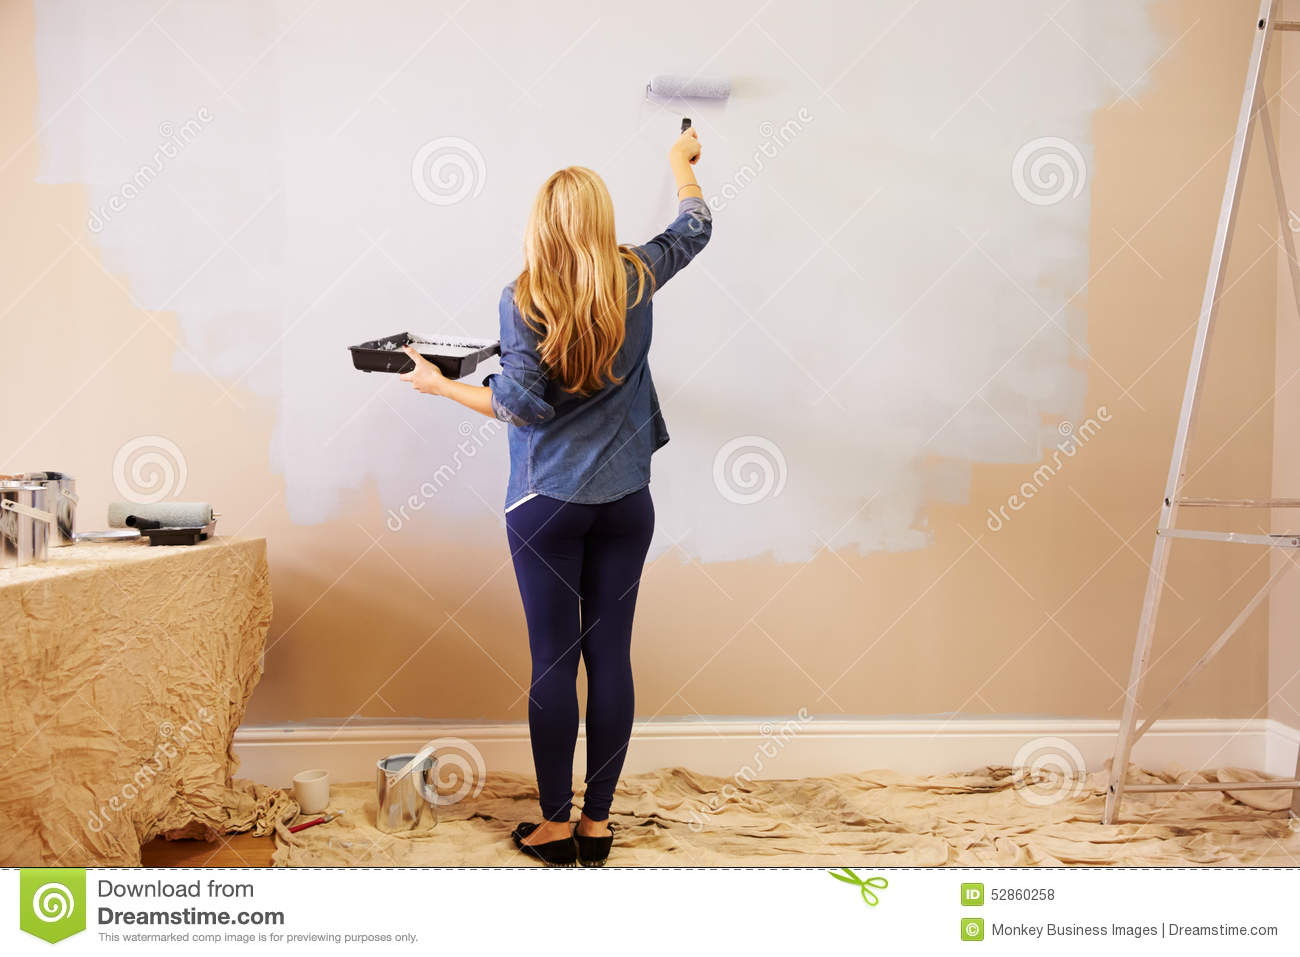 Woman Decorating Room Using Paint Roller On Wall